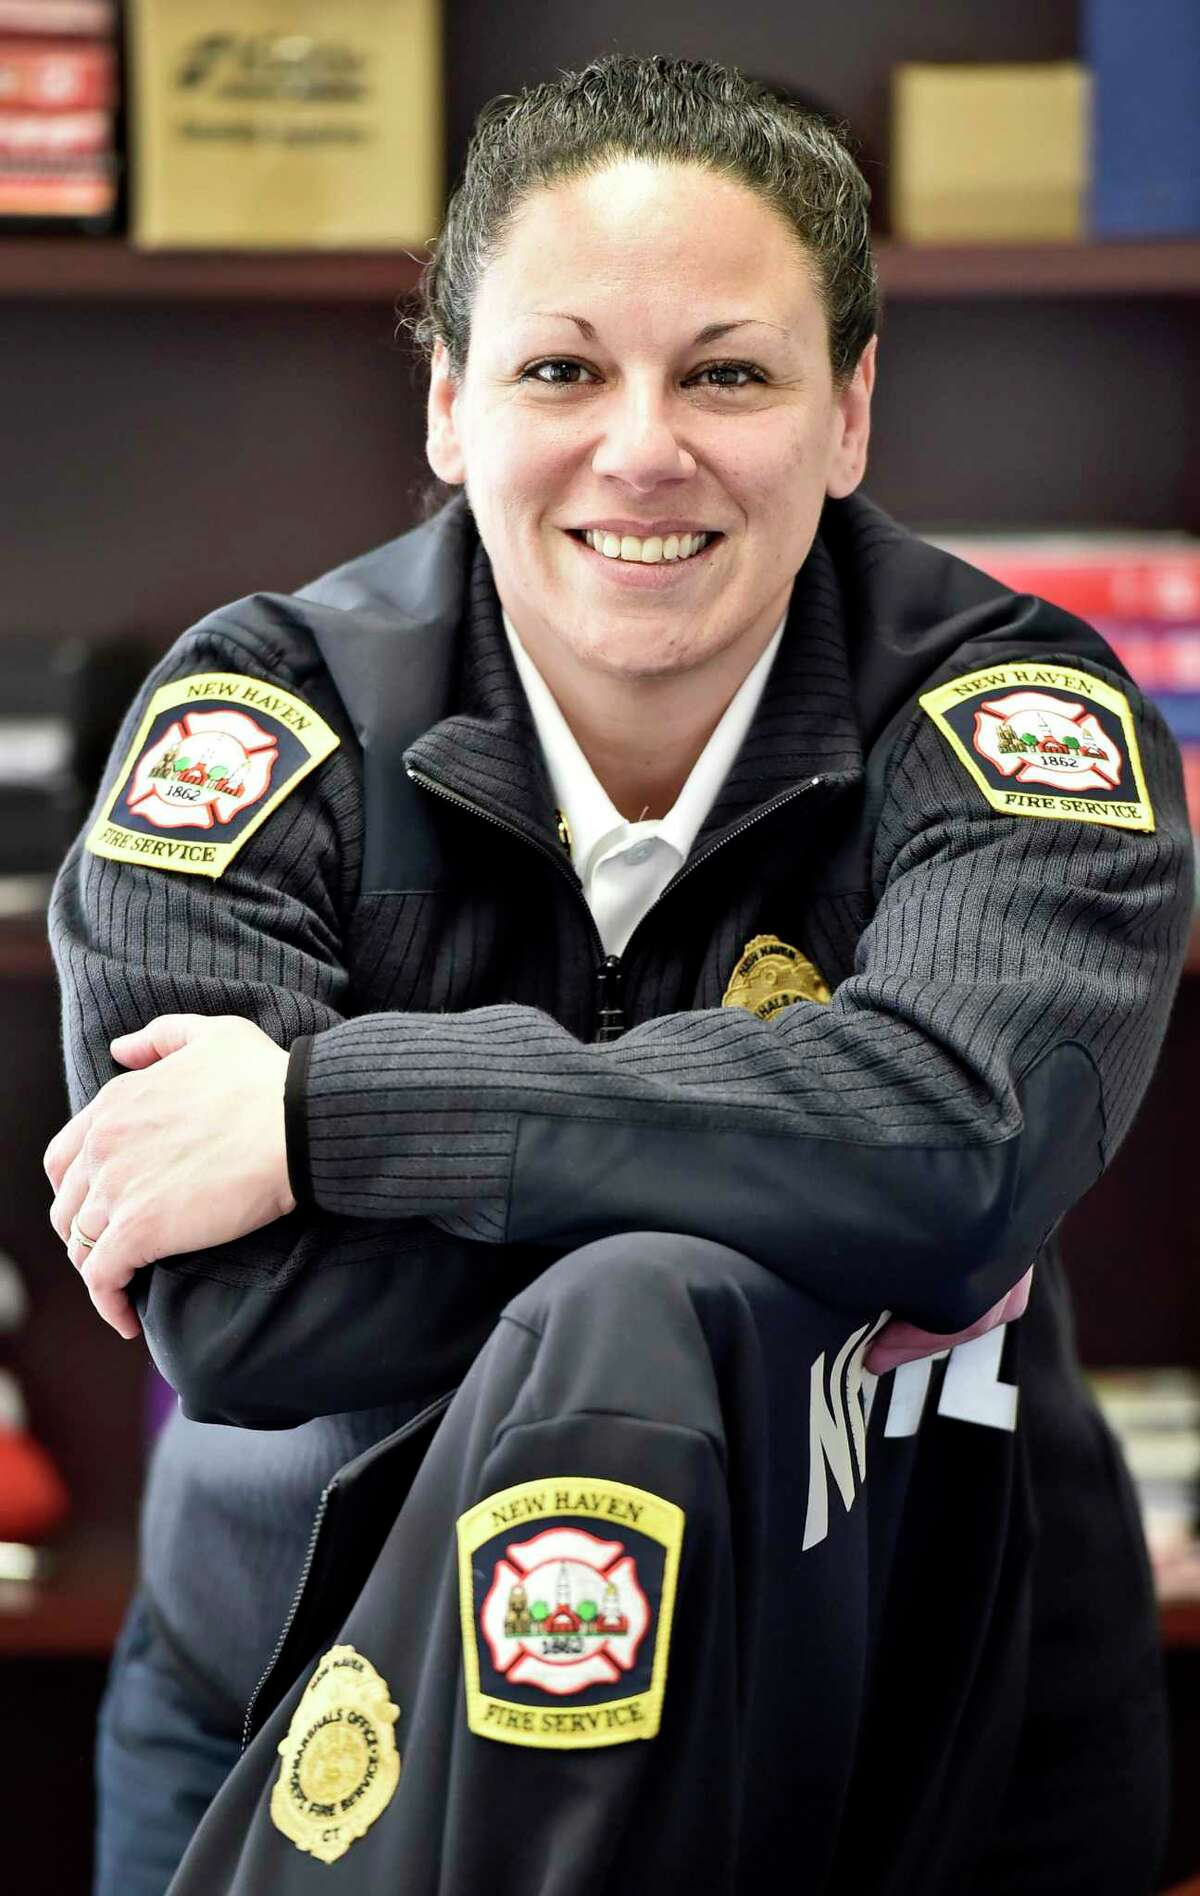 Jennifer Forslund was recently promoted to deputy fire marshal in New Haven, becoming the first woman to hold the position.